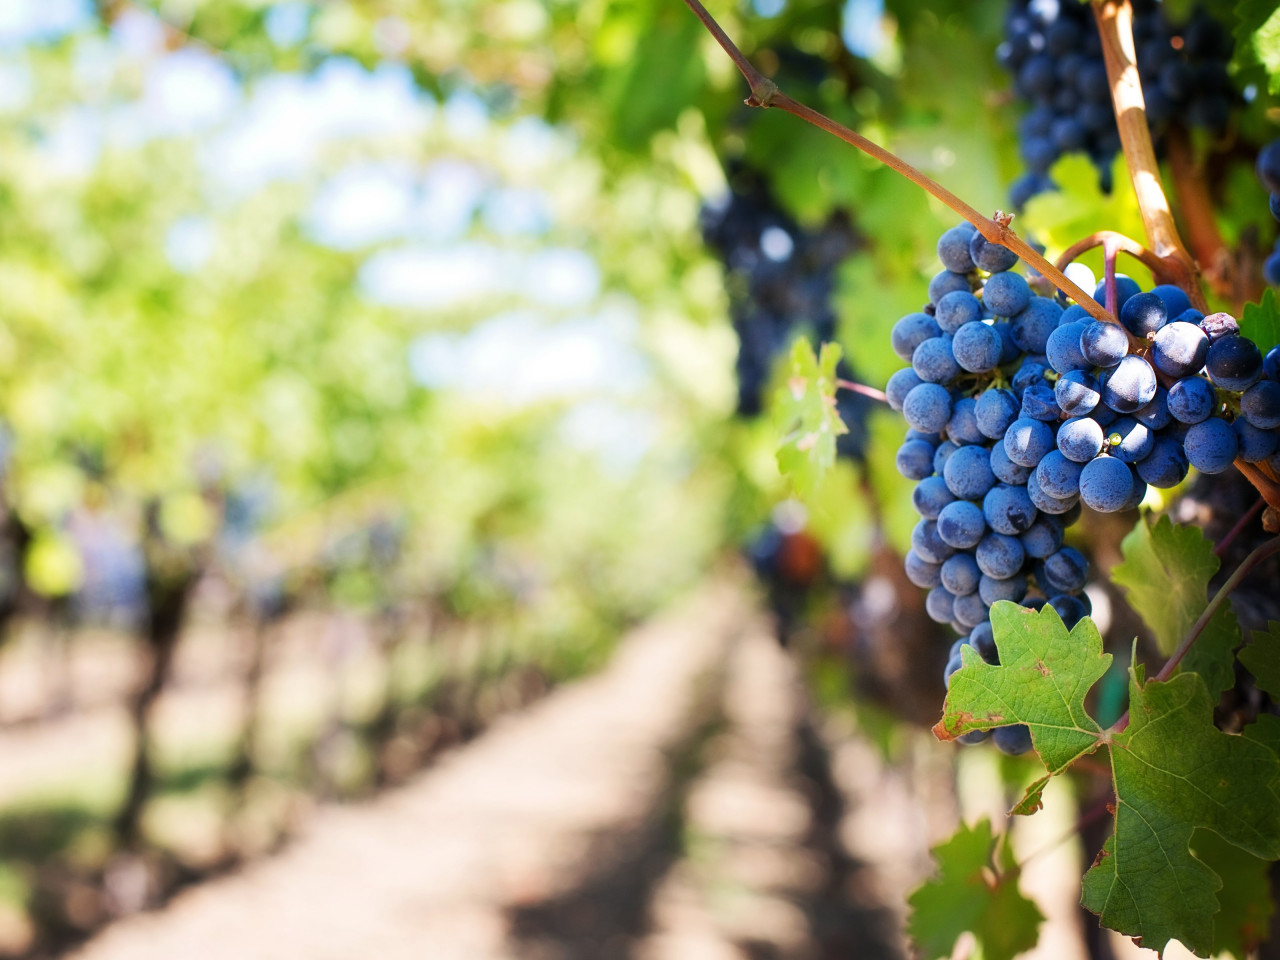 Grapes in vineyard wallpaper 1280x960